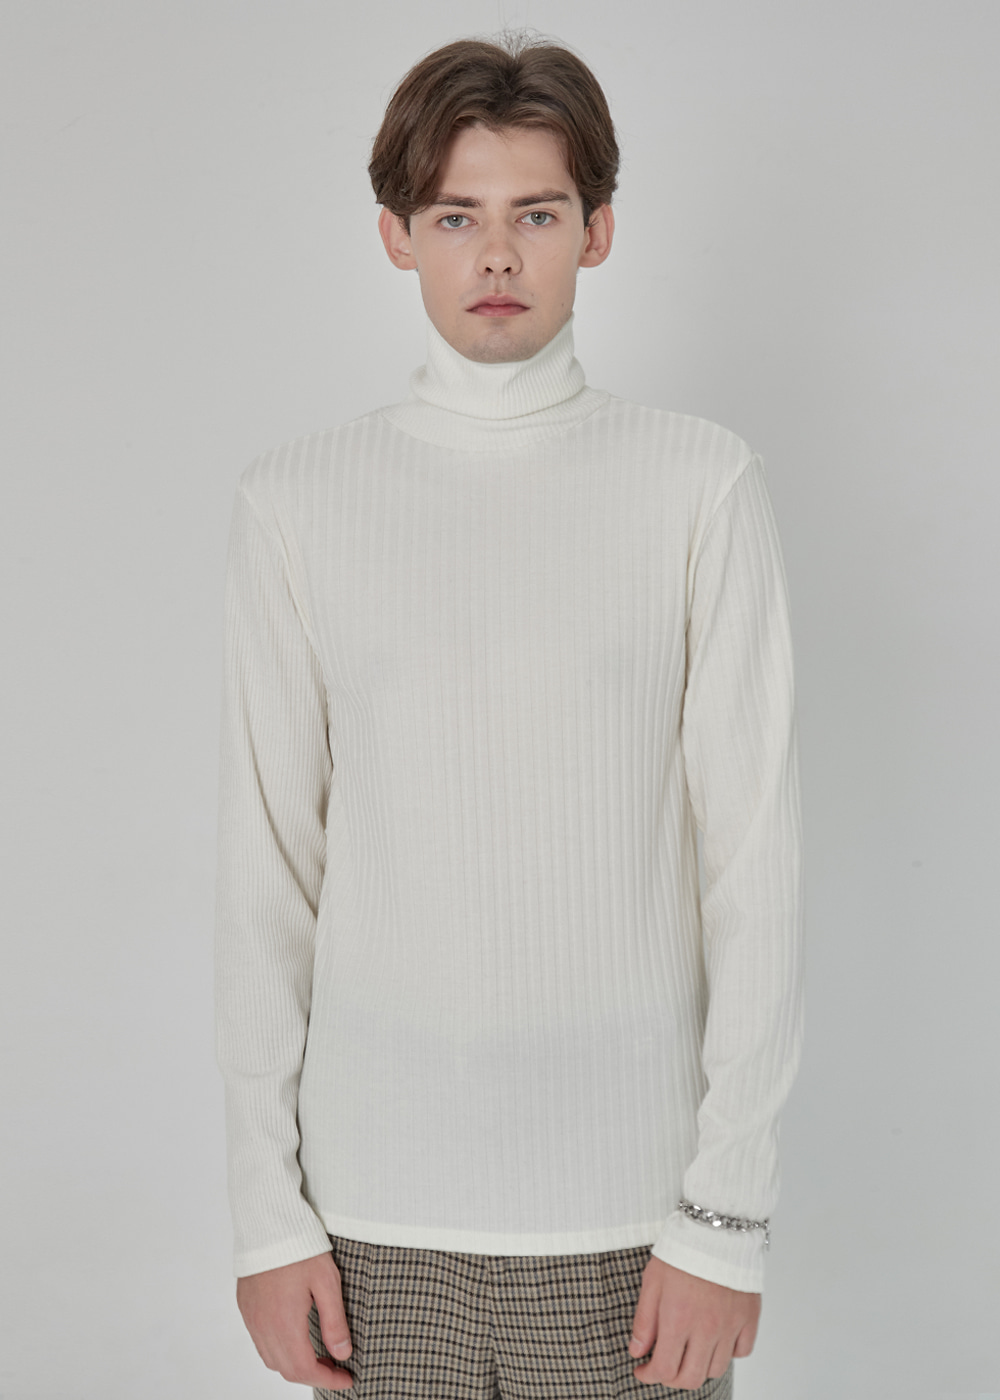 MIX RIB TURTLE NECK KNIT IVORY